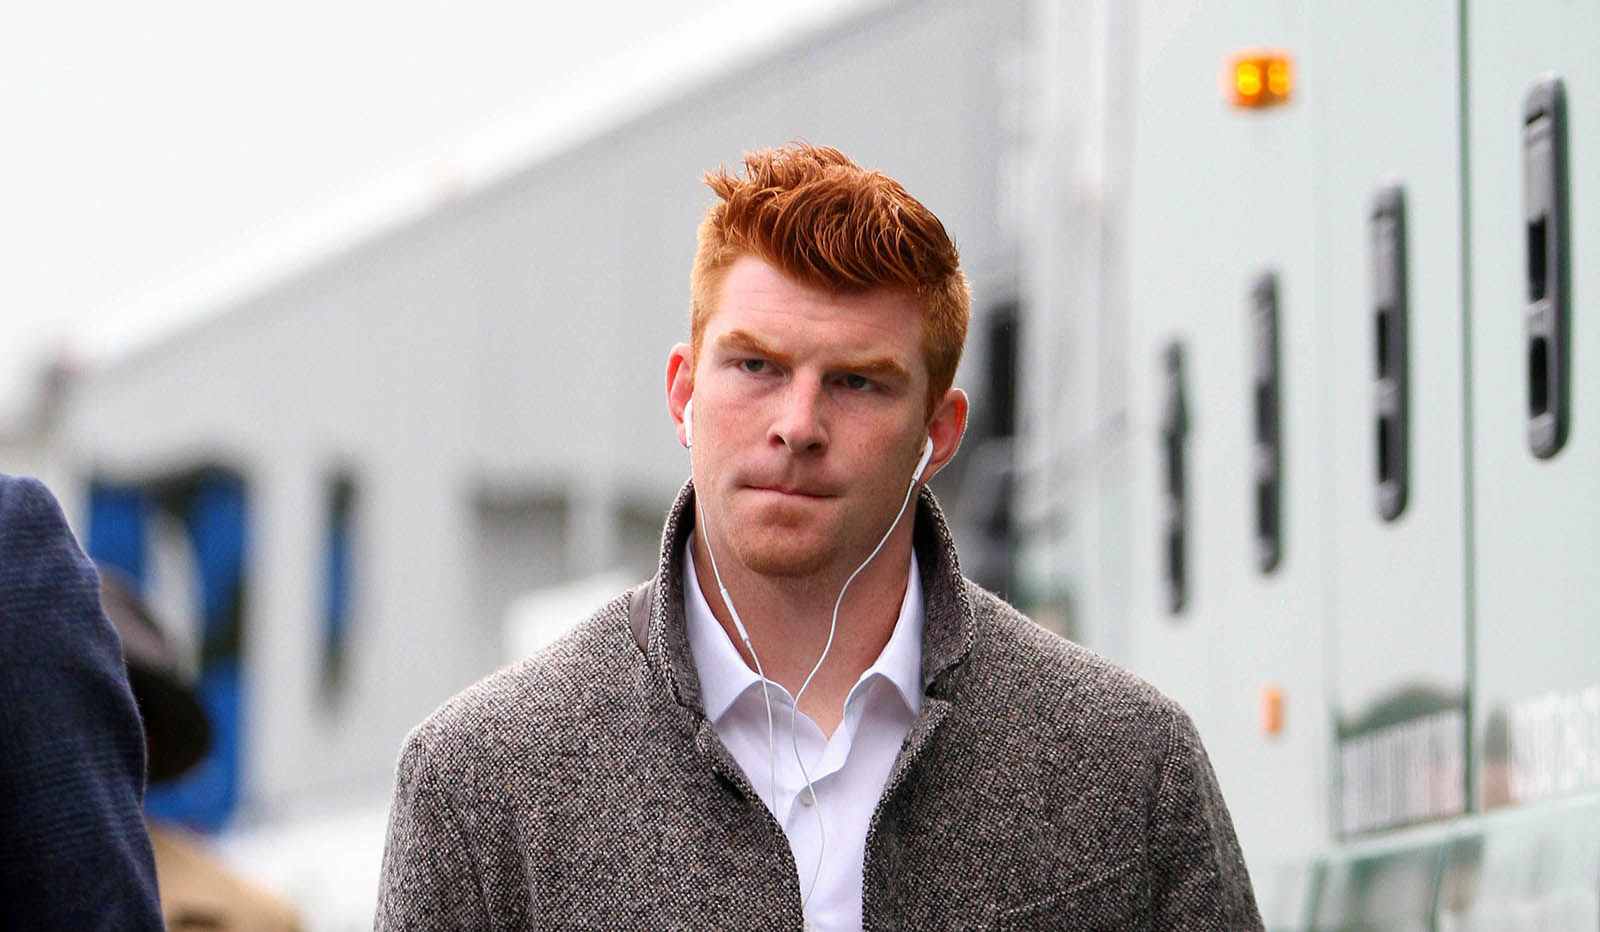 Thanks, Andy Dalton: One Bills fan's jersey says it all | Local ...